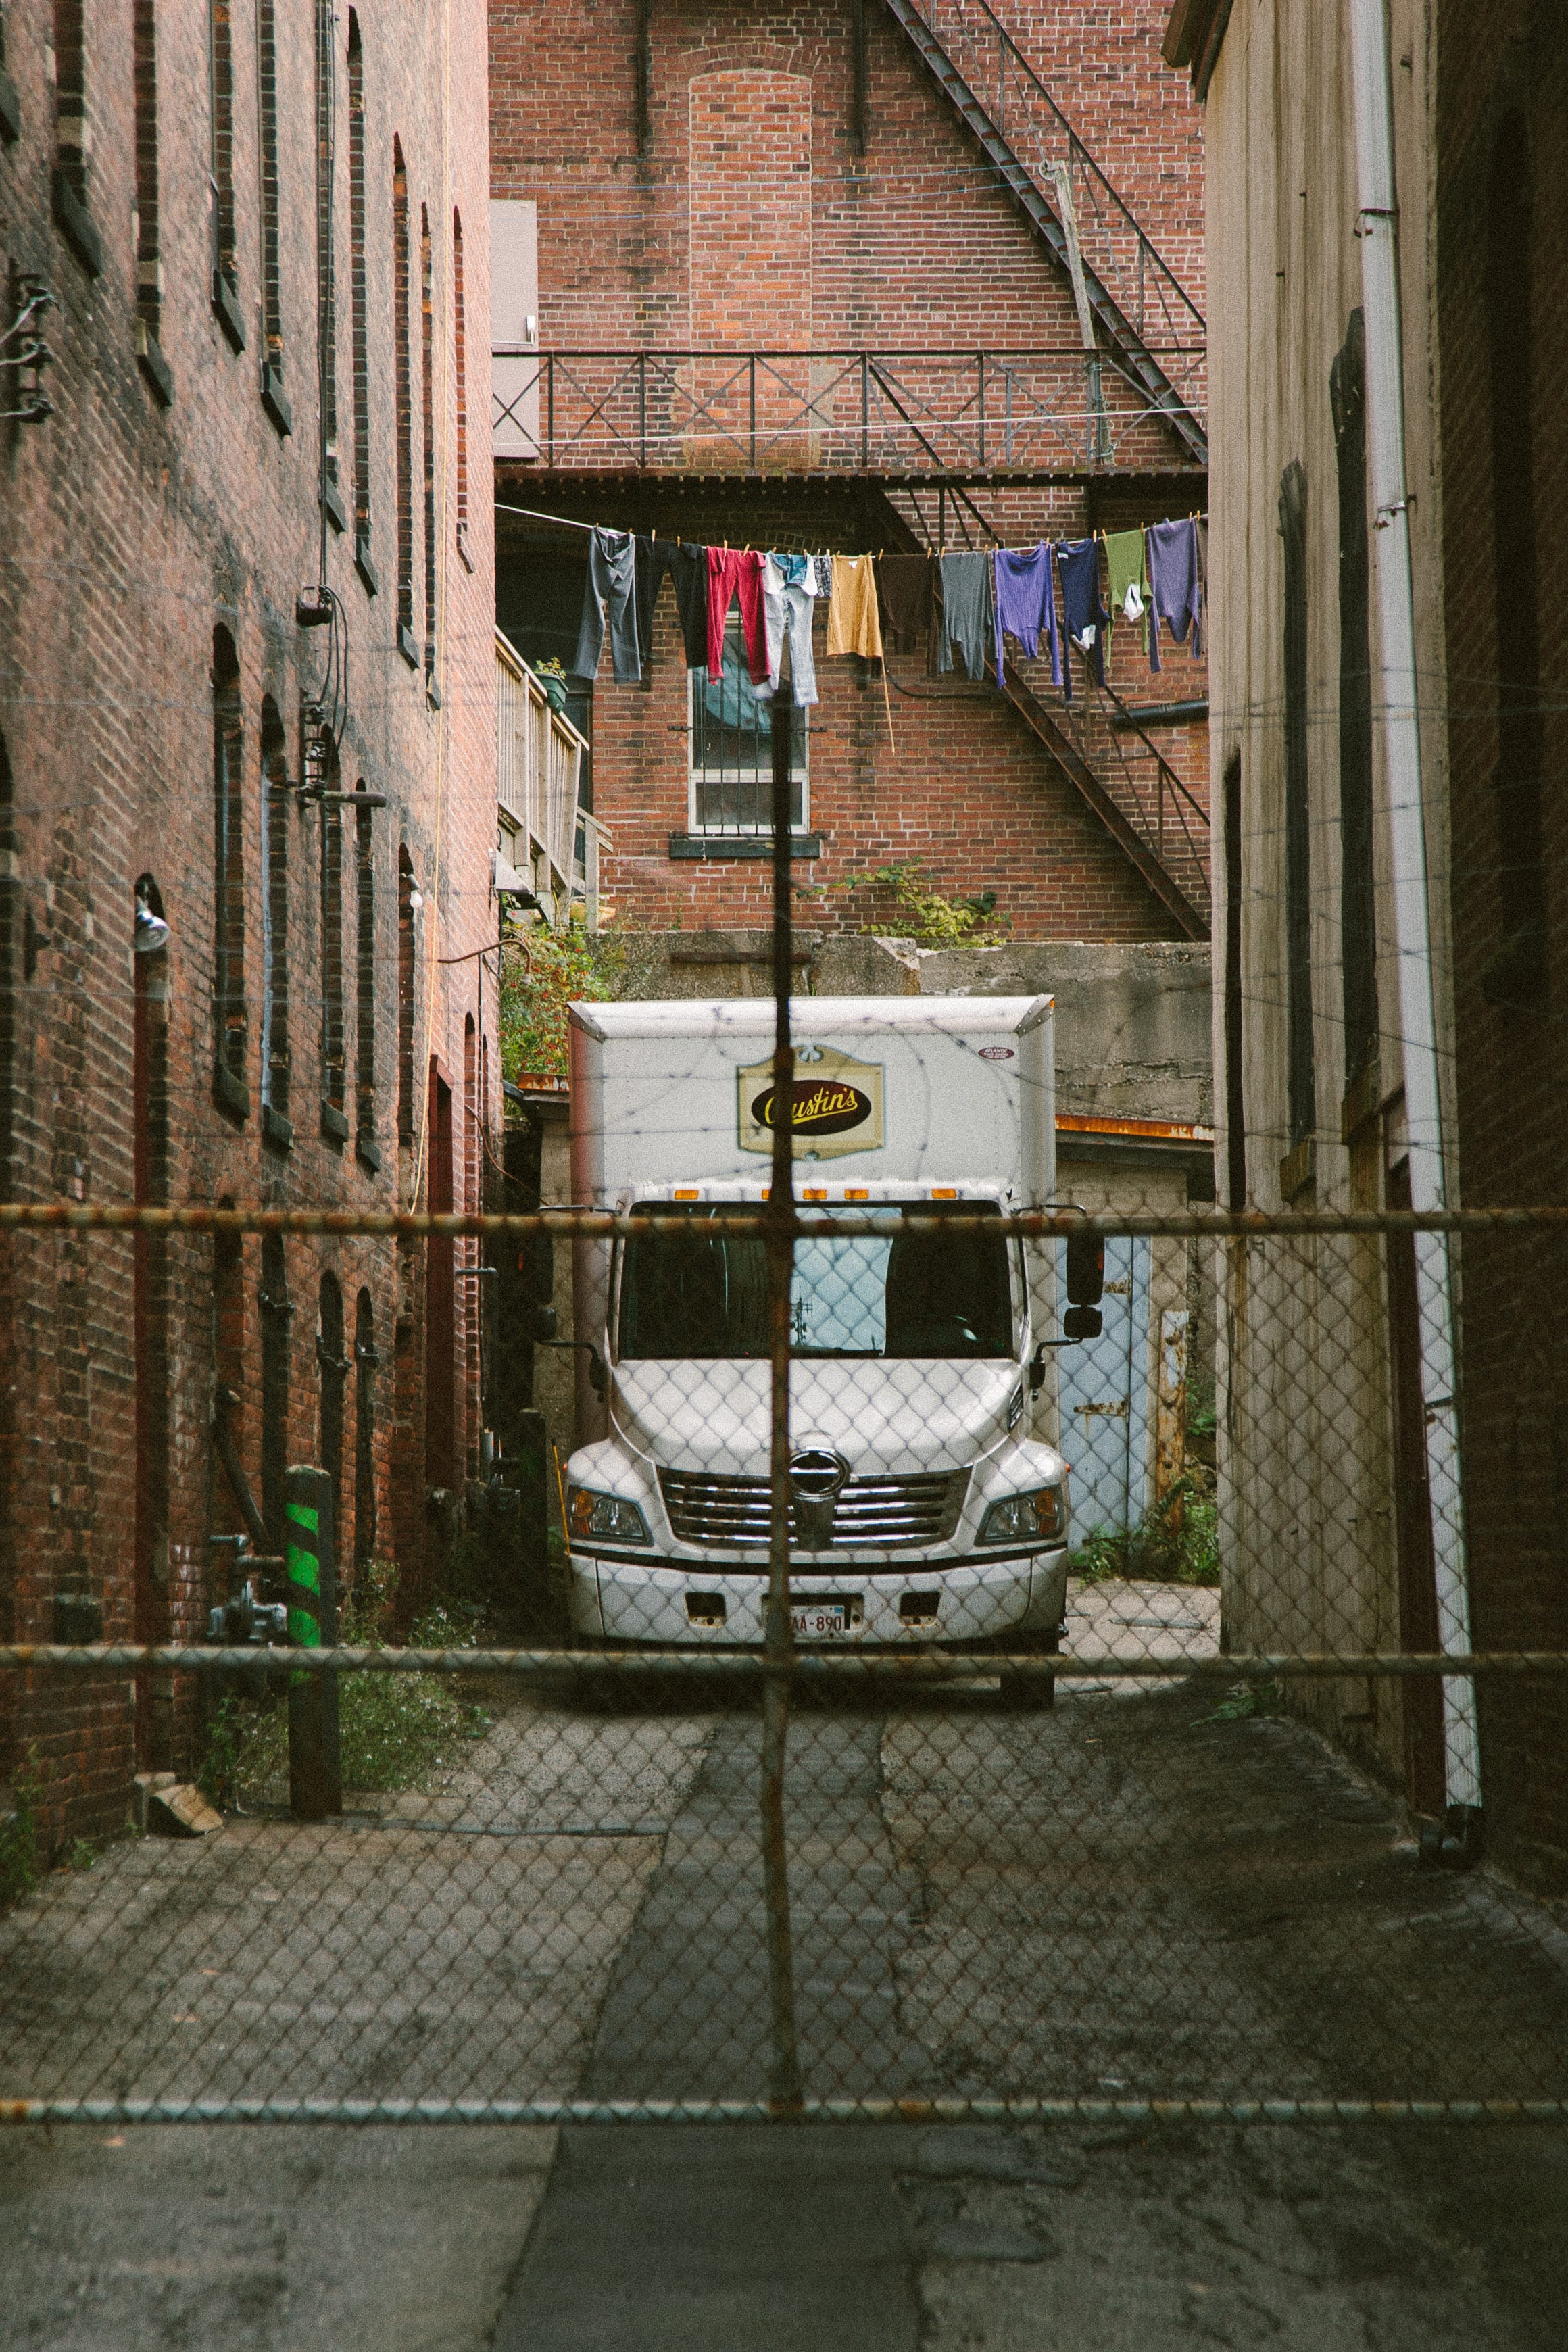 A photograph depicting Old Bustins Alleyway on Grannan Clothes Drying